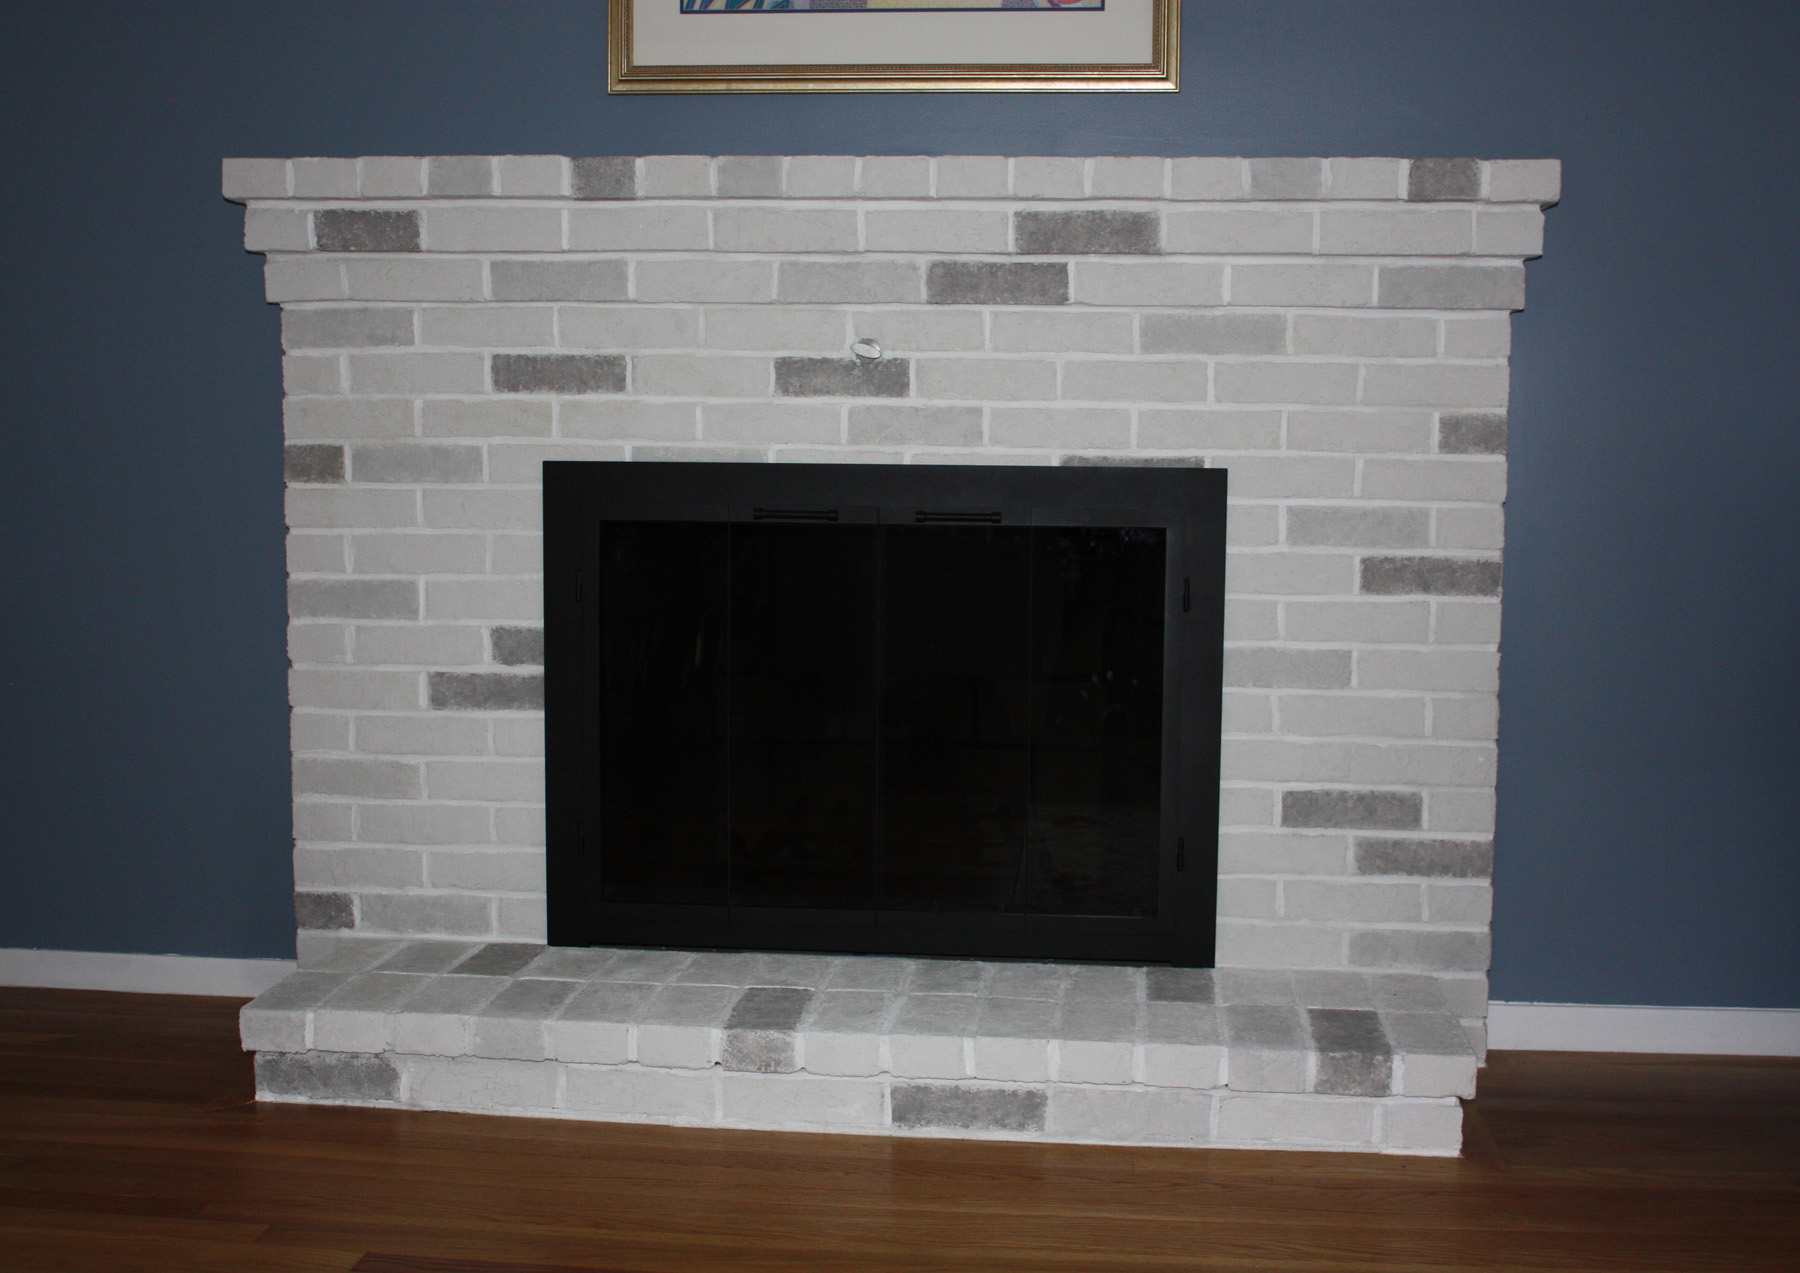 textured plaster fireplace